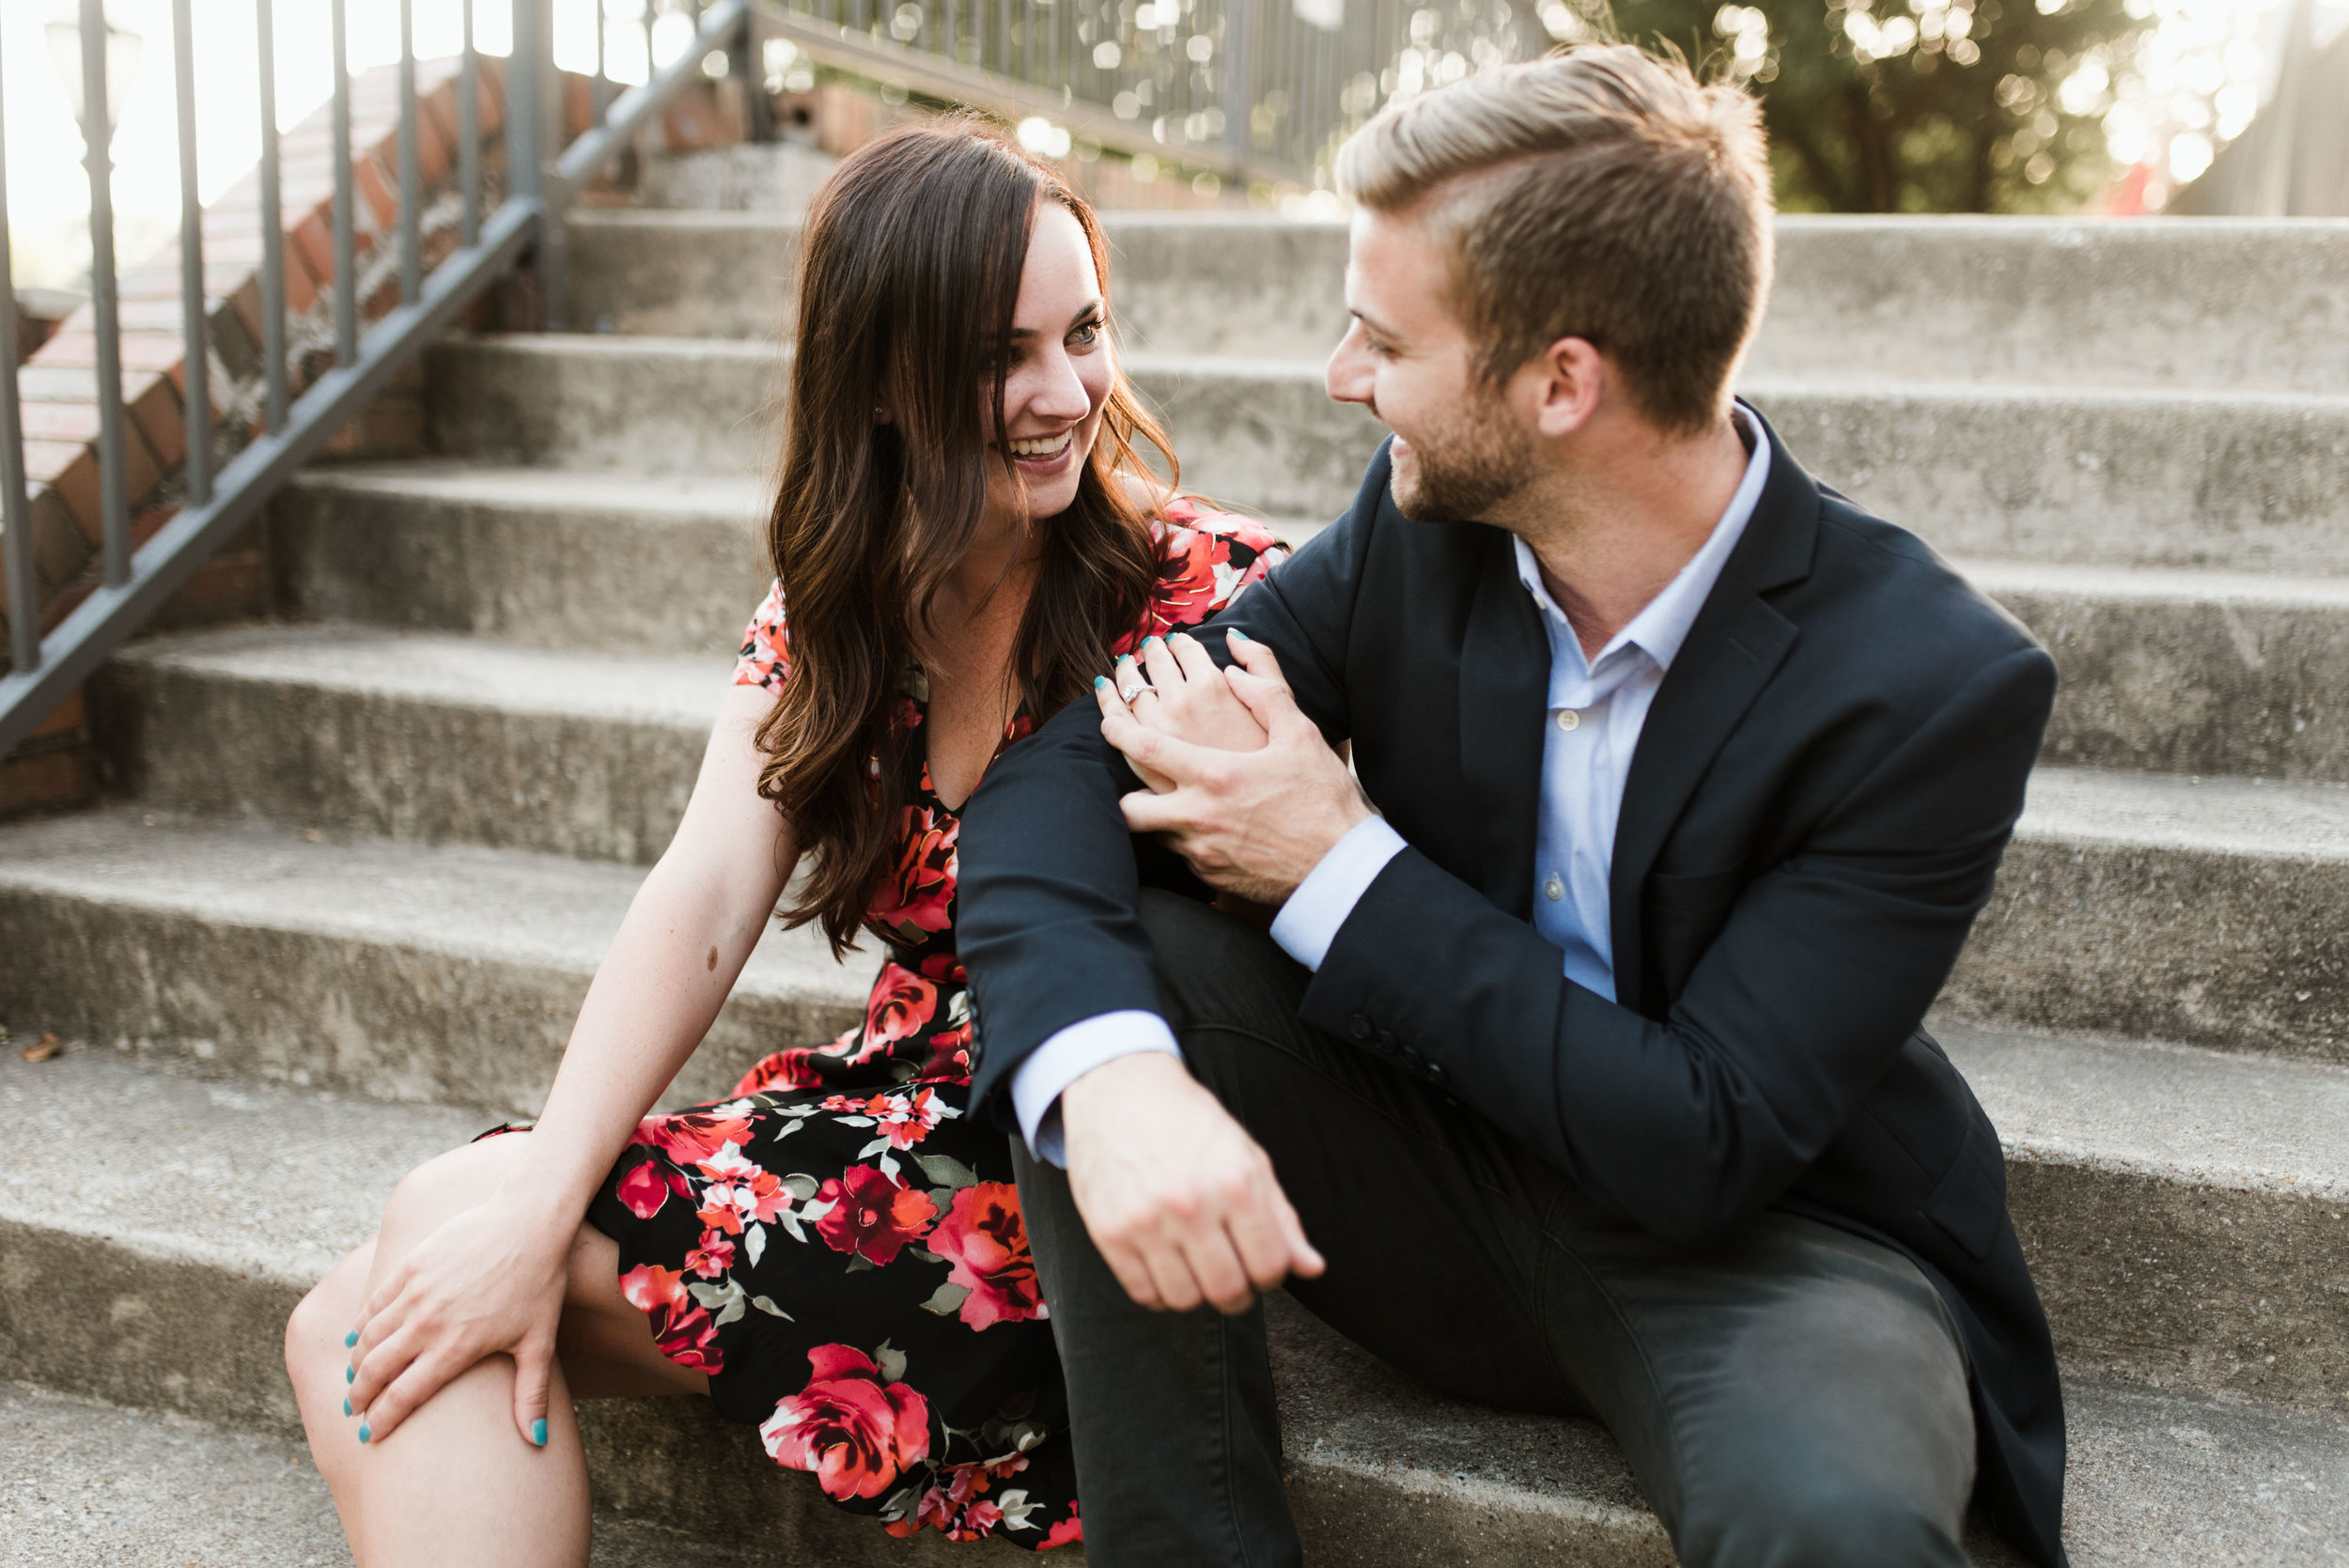 surprise dallas proposal | dallas photographer photographer | Fort Worth wedding photographer | www.jordanmitchellphotography.com